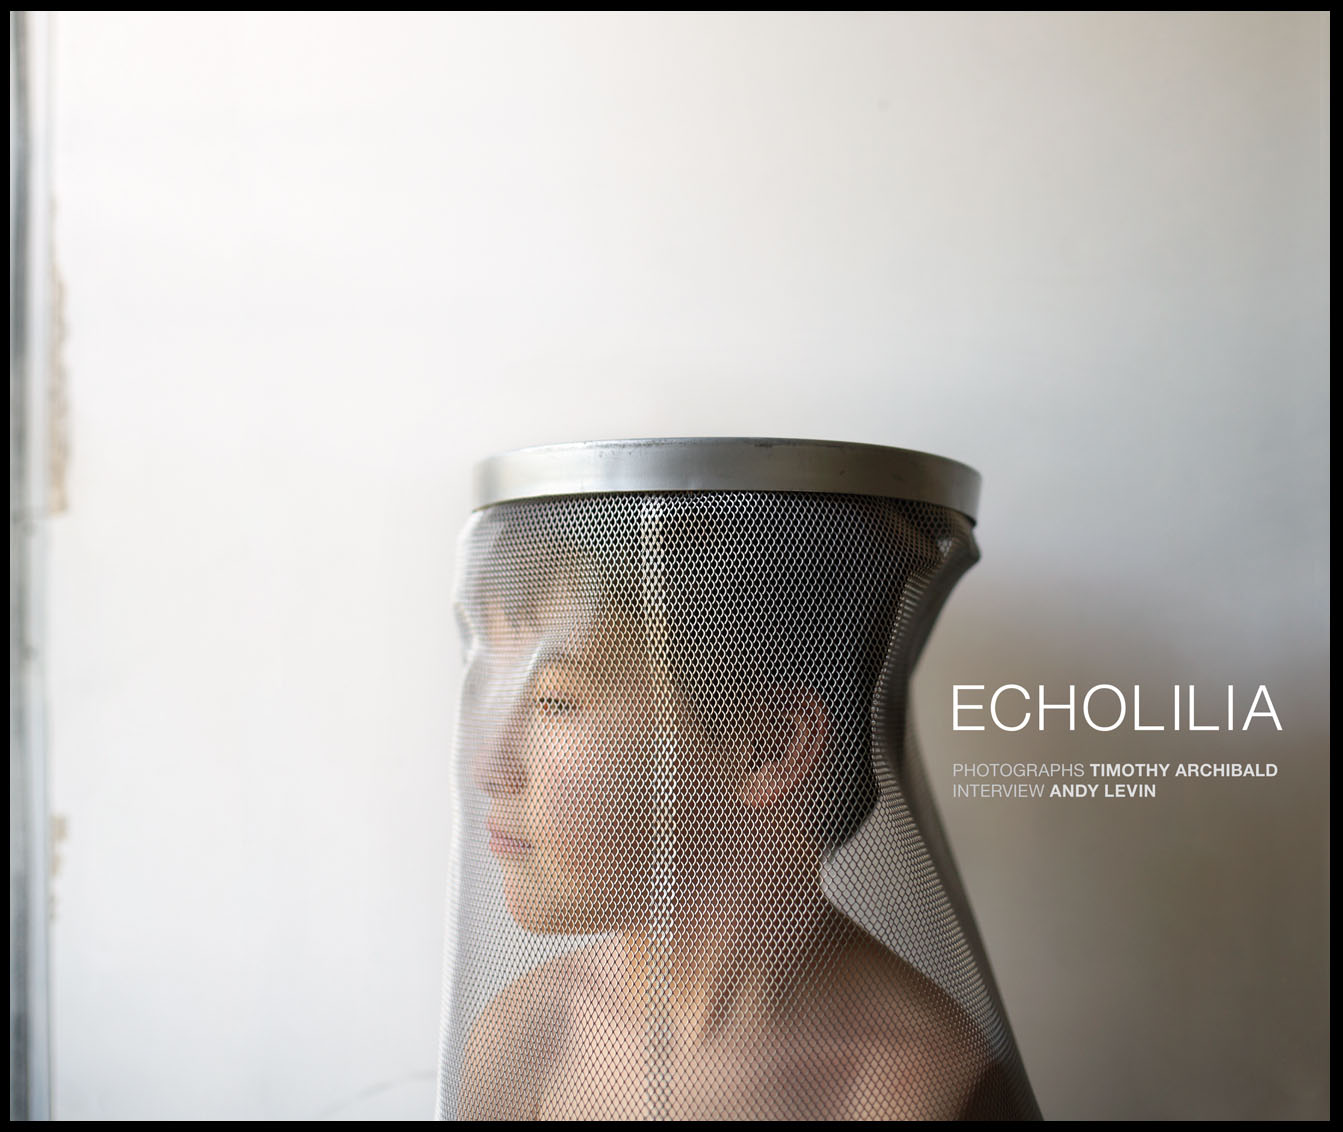 "ECHOLILIA / Sometimes I wonder.  Photographs by Timothy Archibald. Interview by Andy Levin  Echo Press, San Francisco, CA, 2010. 70 pp., 43 color plates, 13½x11""."